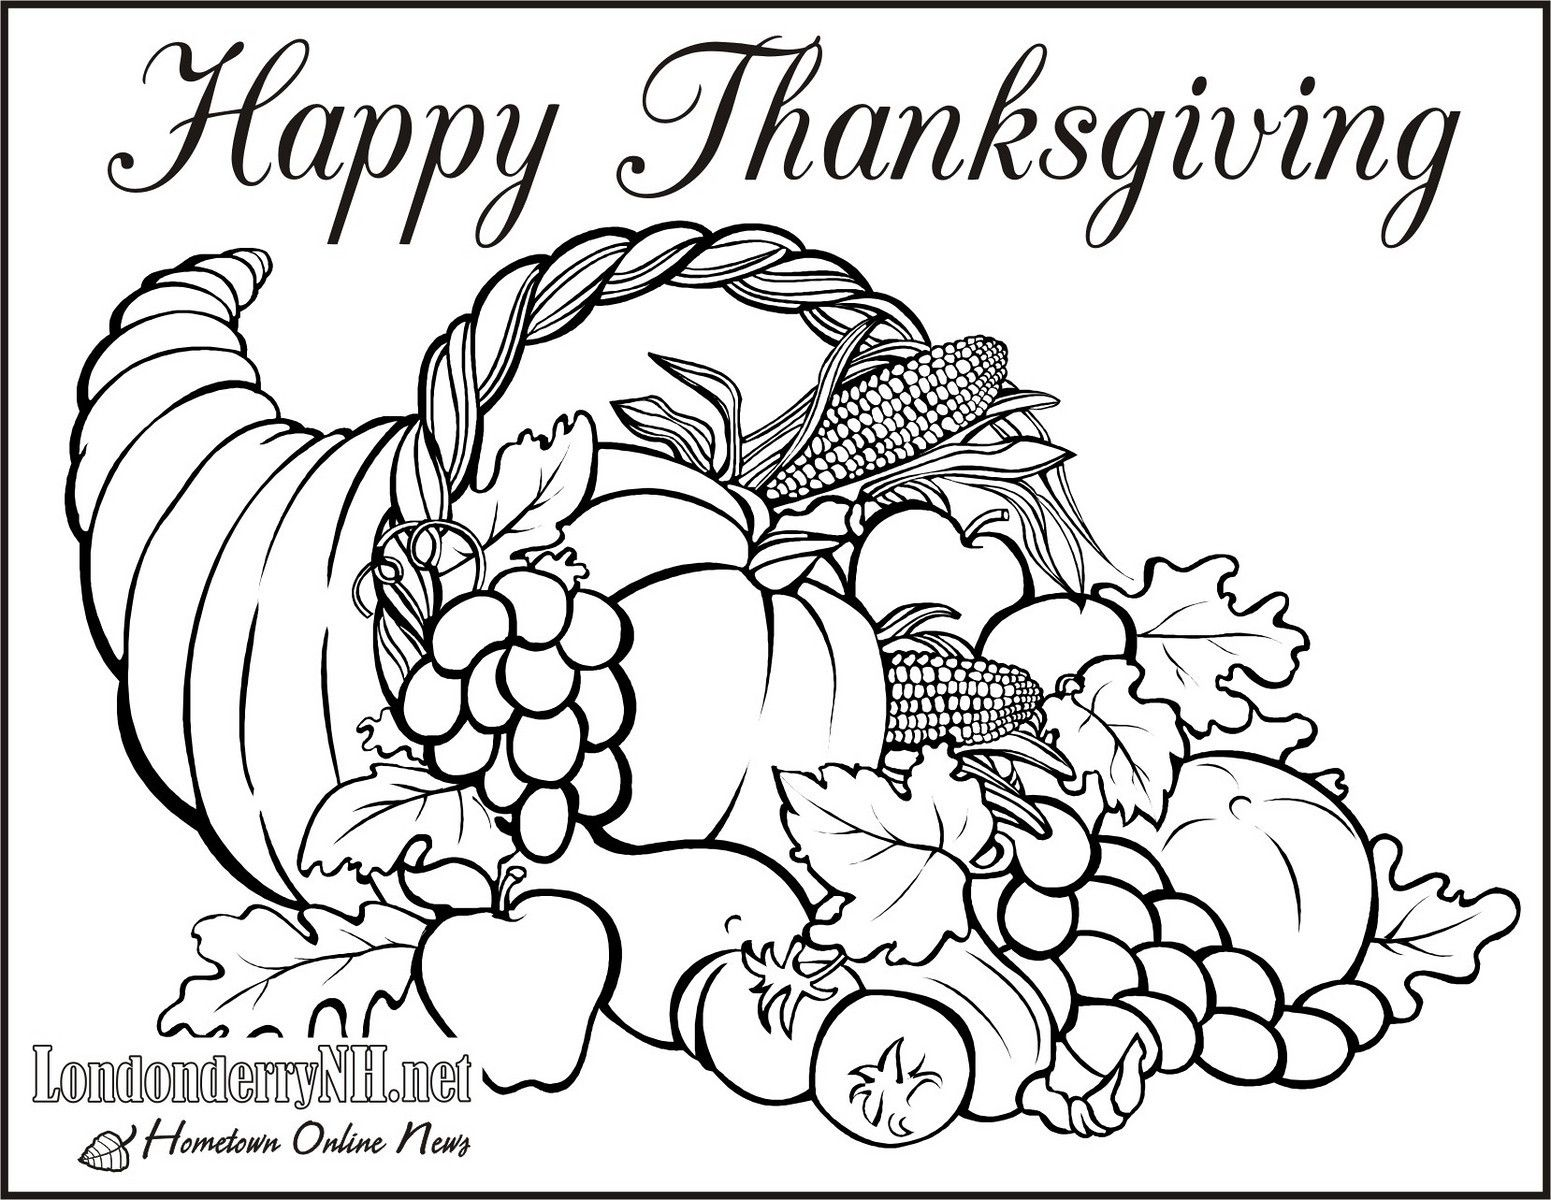 Thanksgiving Day Coloring Pages Kids Pinterest Tumblr Google Yahoo